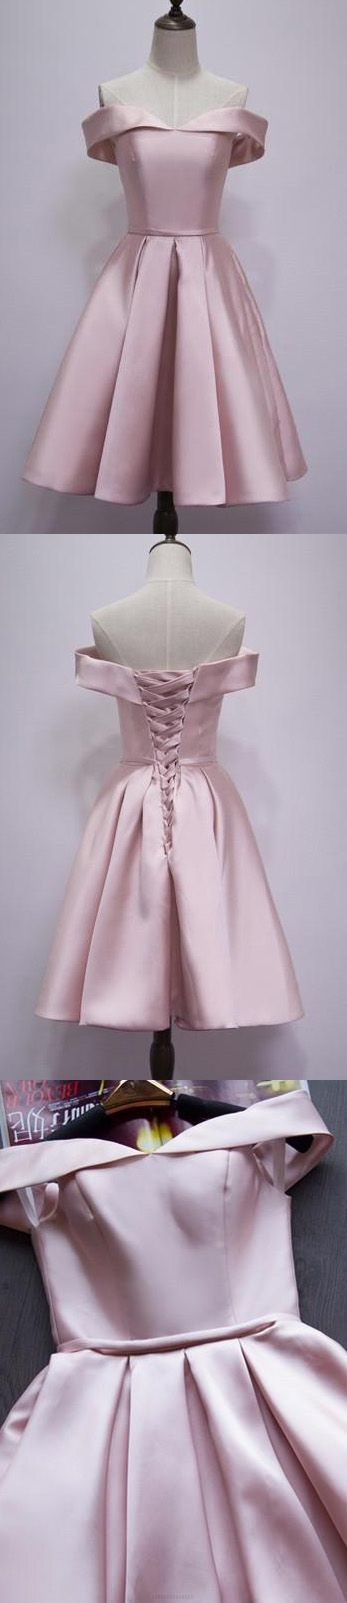 Robe manchette rose